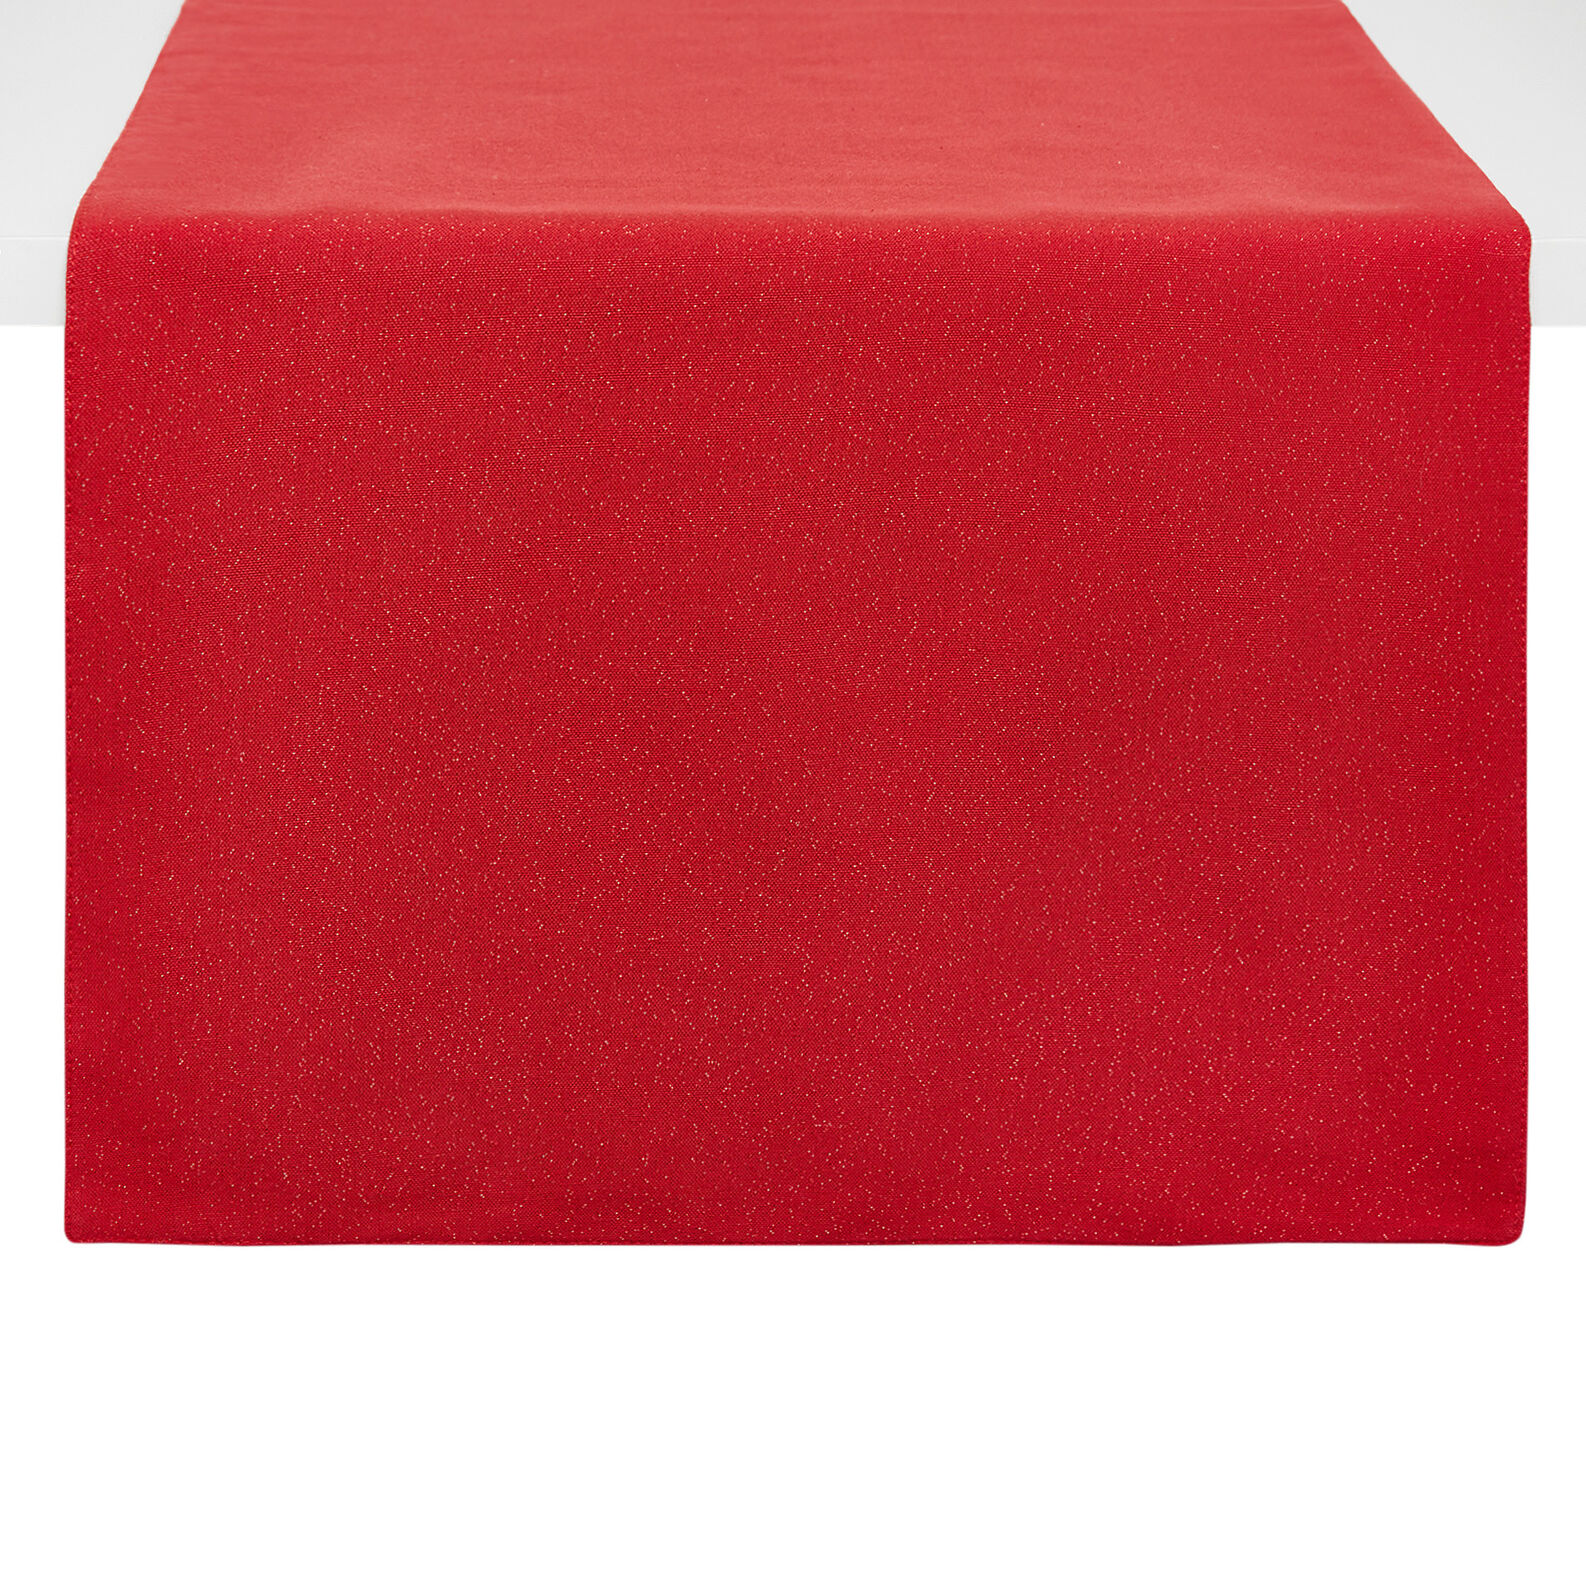 Solid colour cotton table runner with lurex threads